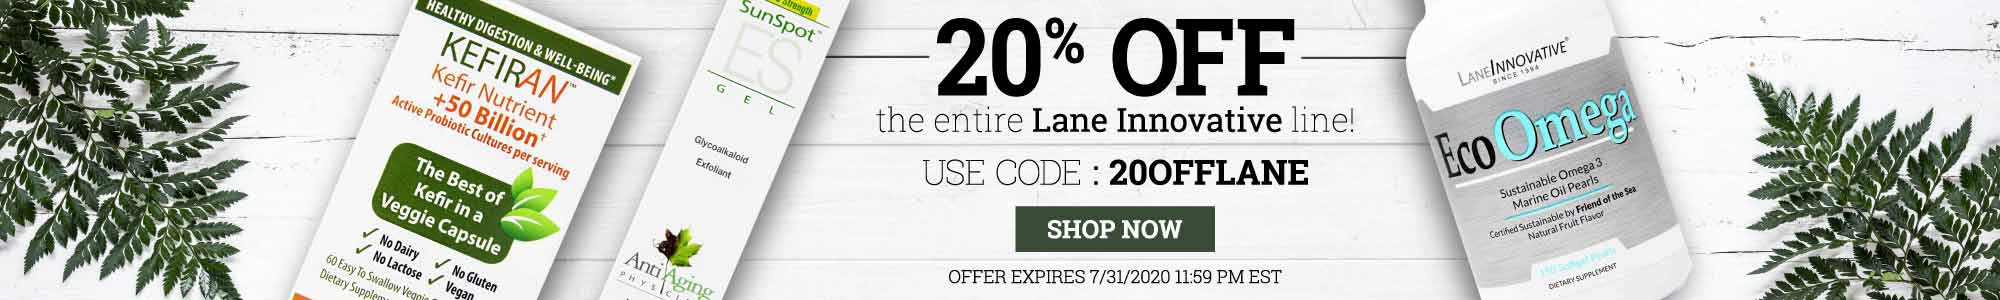 20% Off the entire Lane Innovative line! Use code: 20offlane. Shop now. Offer expires July 31 2020, 11:59 pm EST.